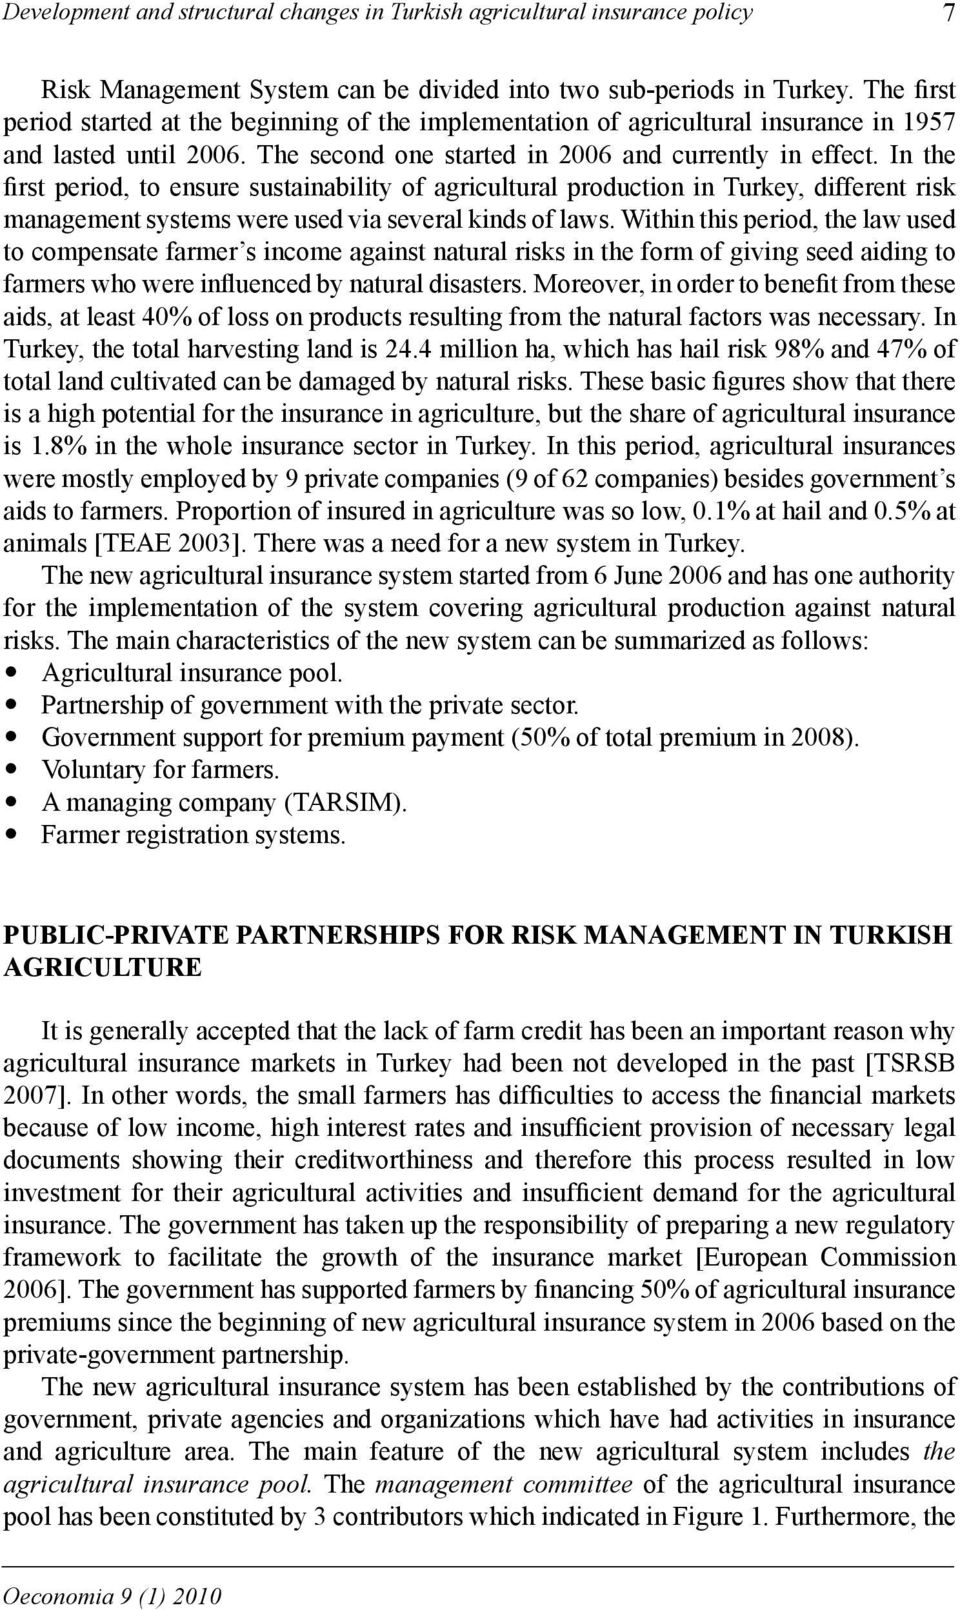 In the first period, to ensure sustainability of agricultural production in Turkey, different risk management systems were used via several kinds of laws.